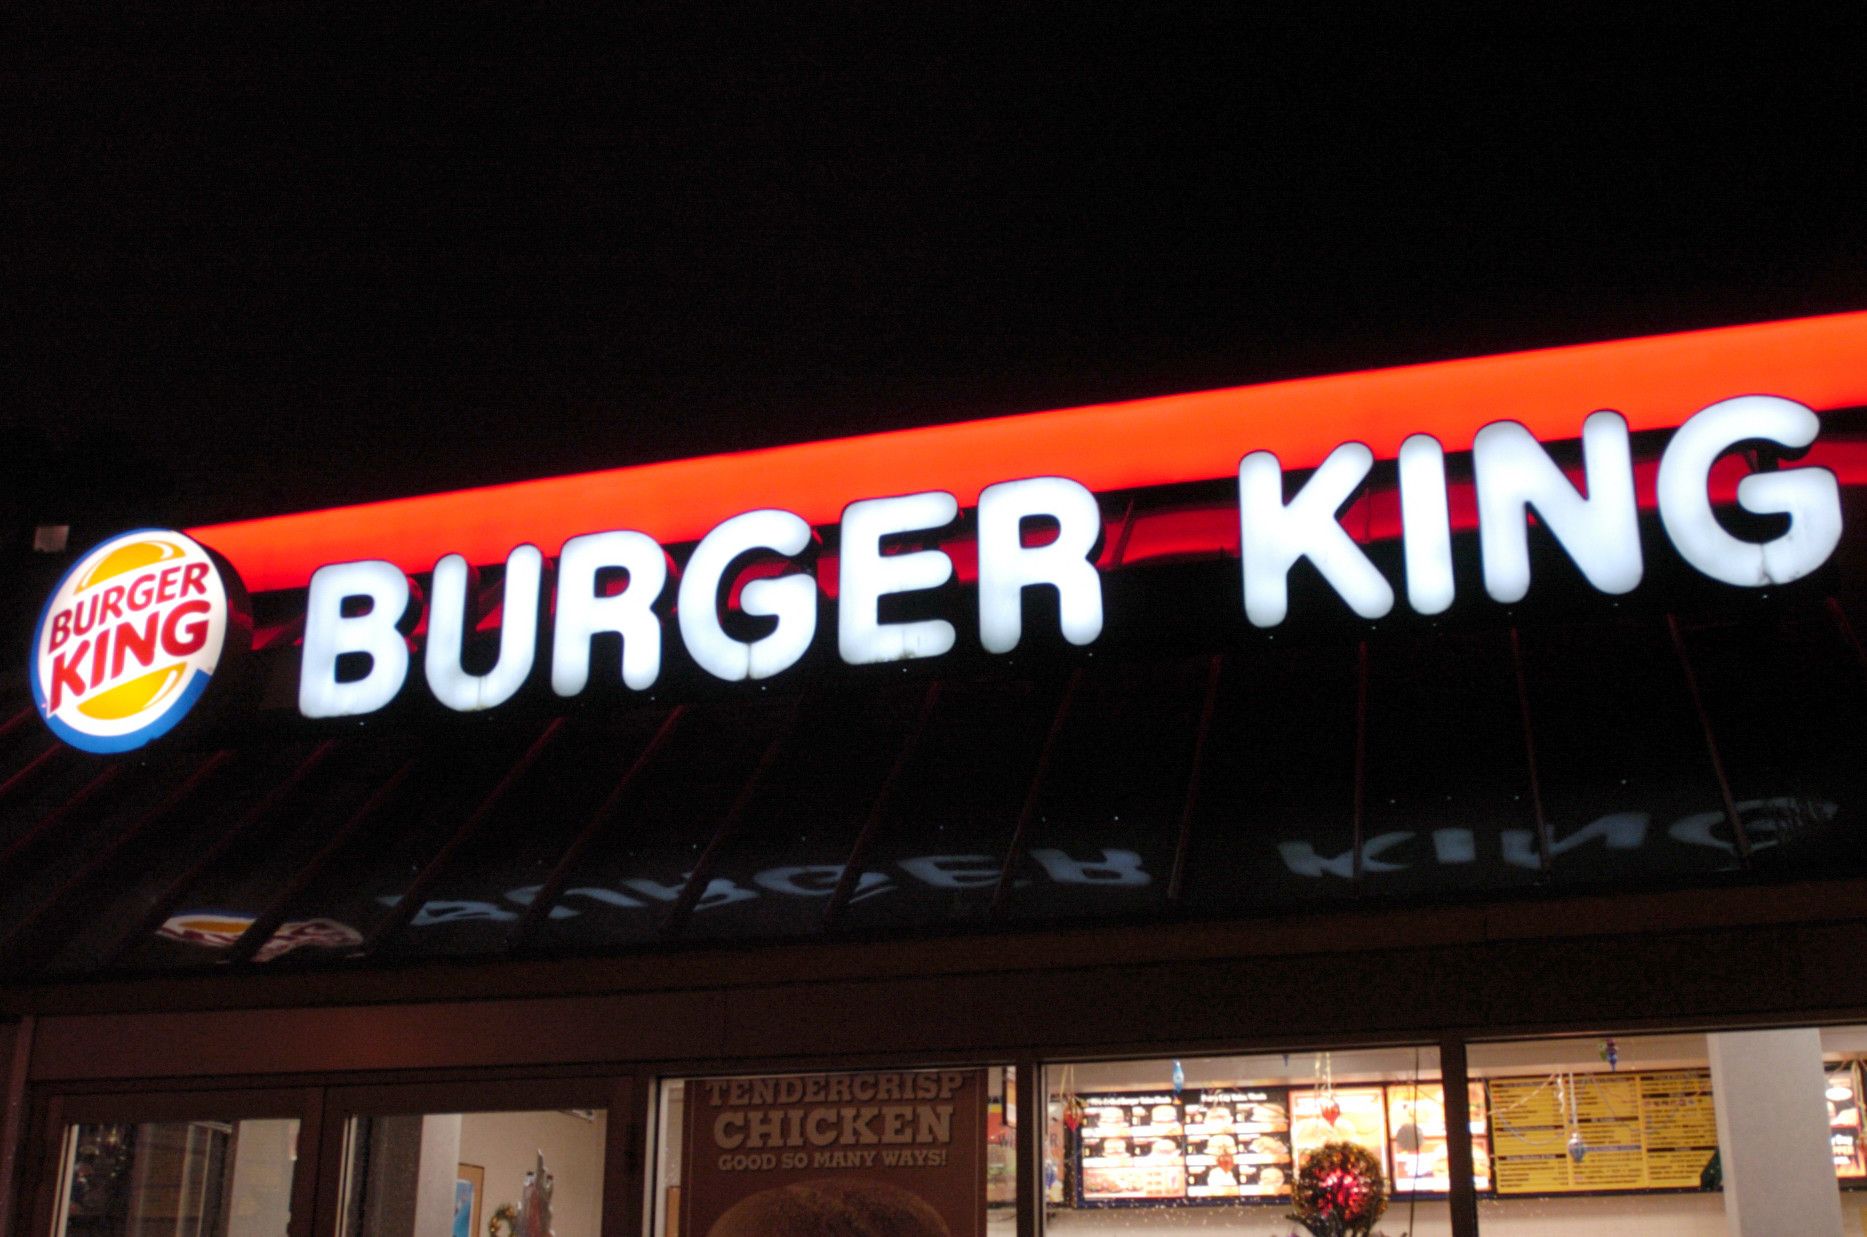 SEE IT: Burger King really wants you to see this moldy, disgusting Whopper – here's why